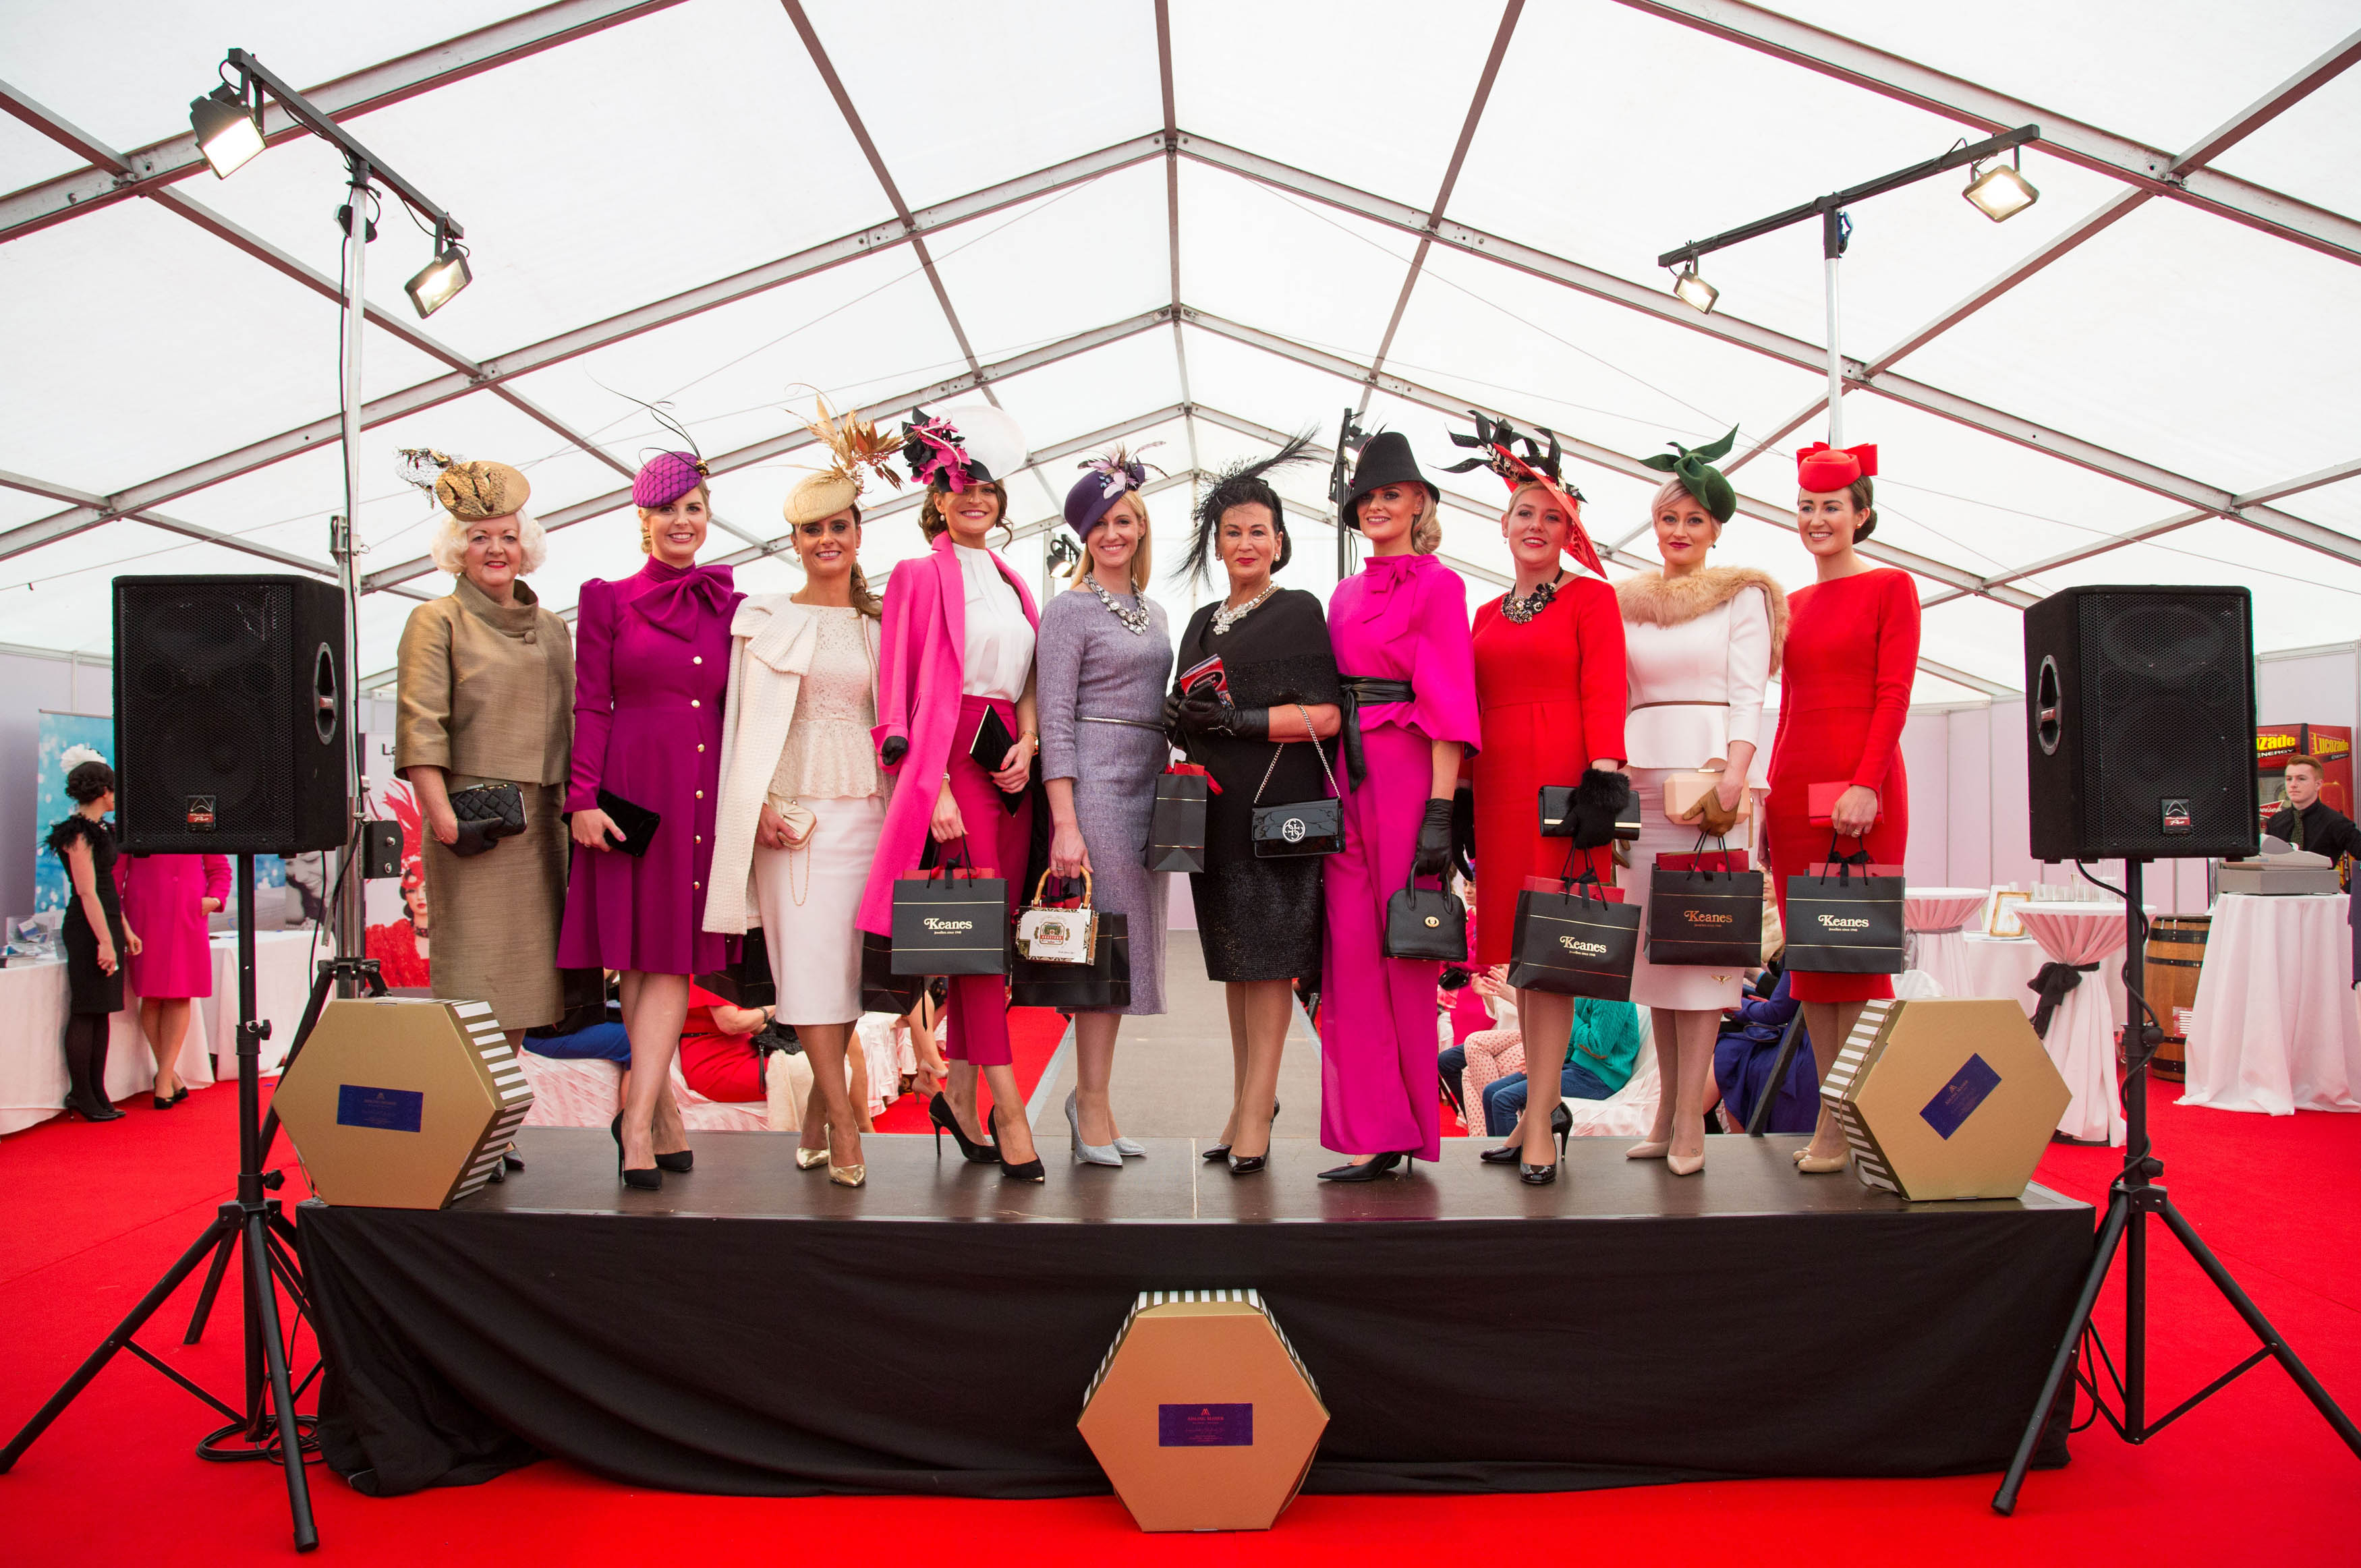 09.10.2016 The 10 finalists in the Keanes Jewellers Best dressed competition at Limerick Racecourse. Picture: Alan Place